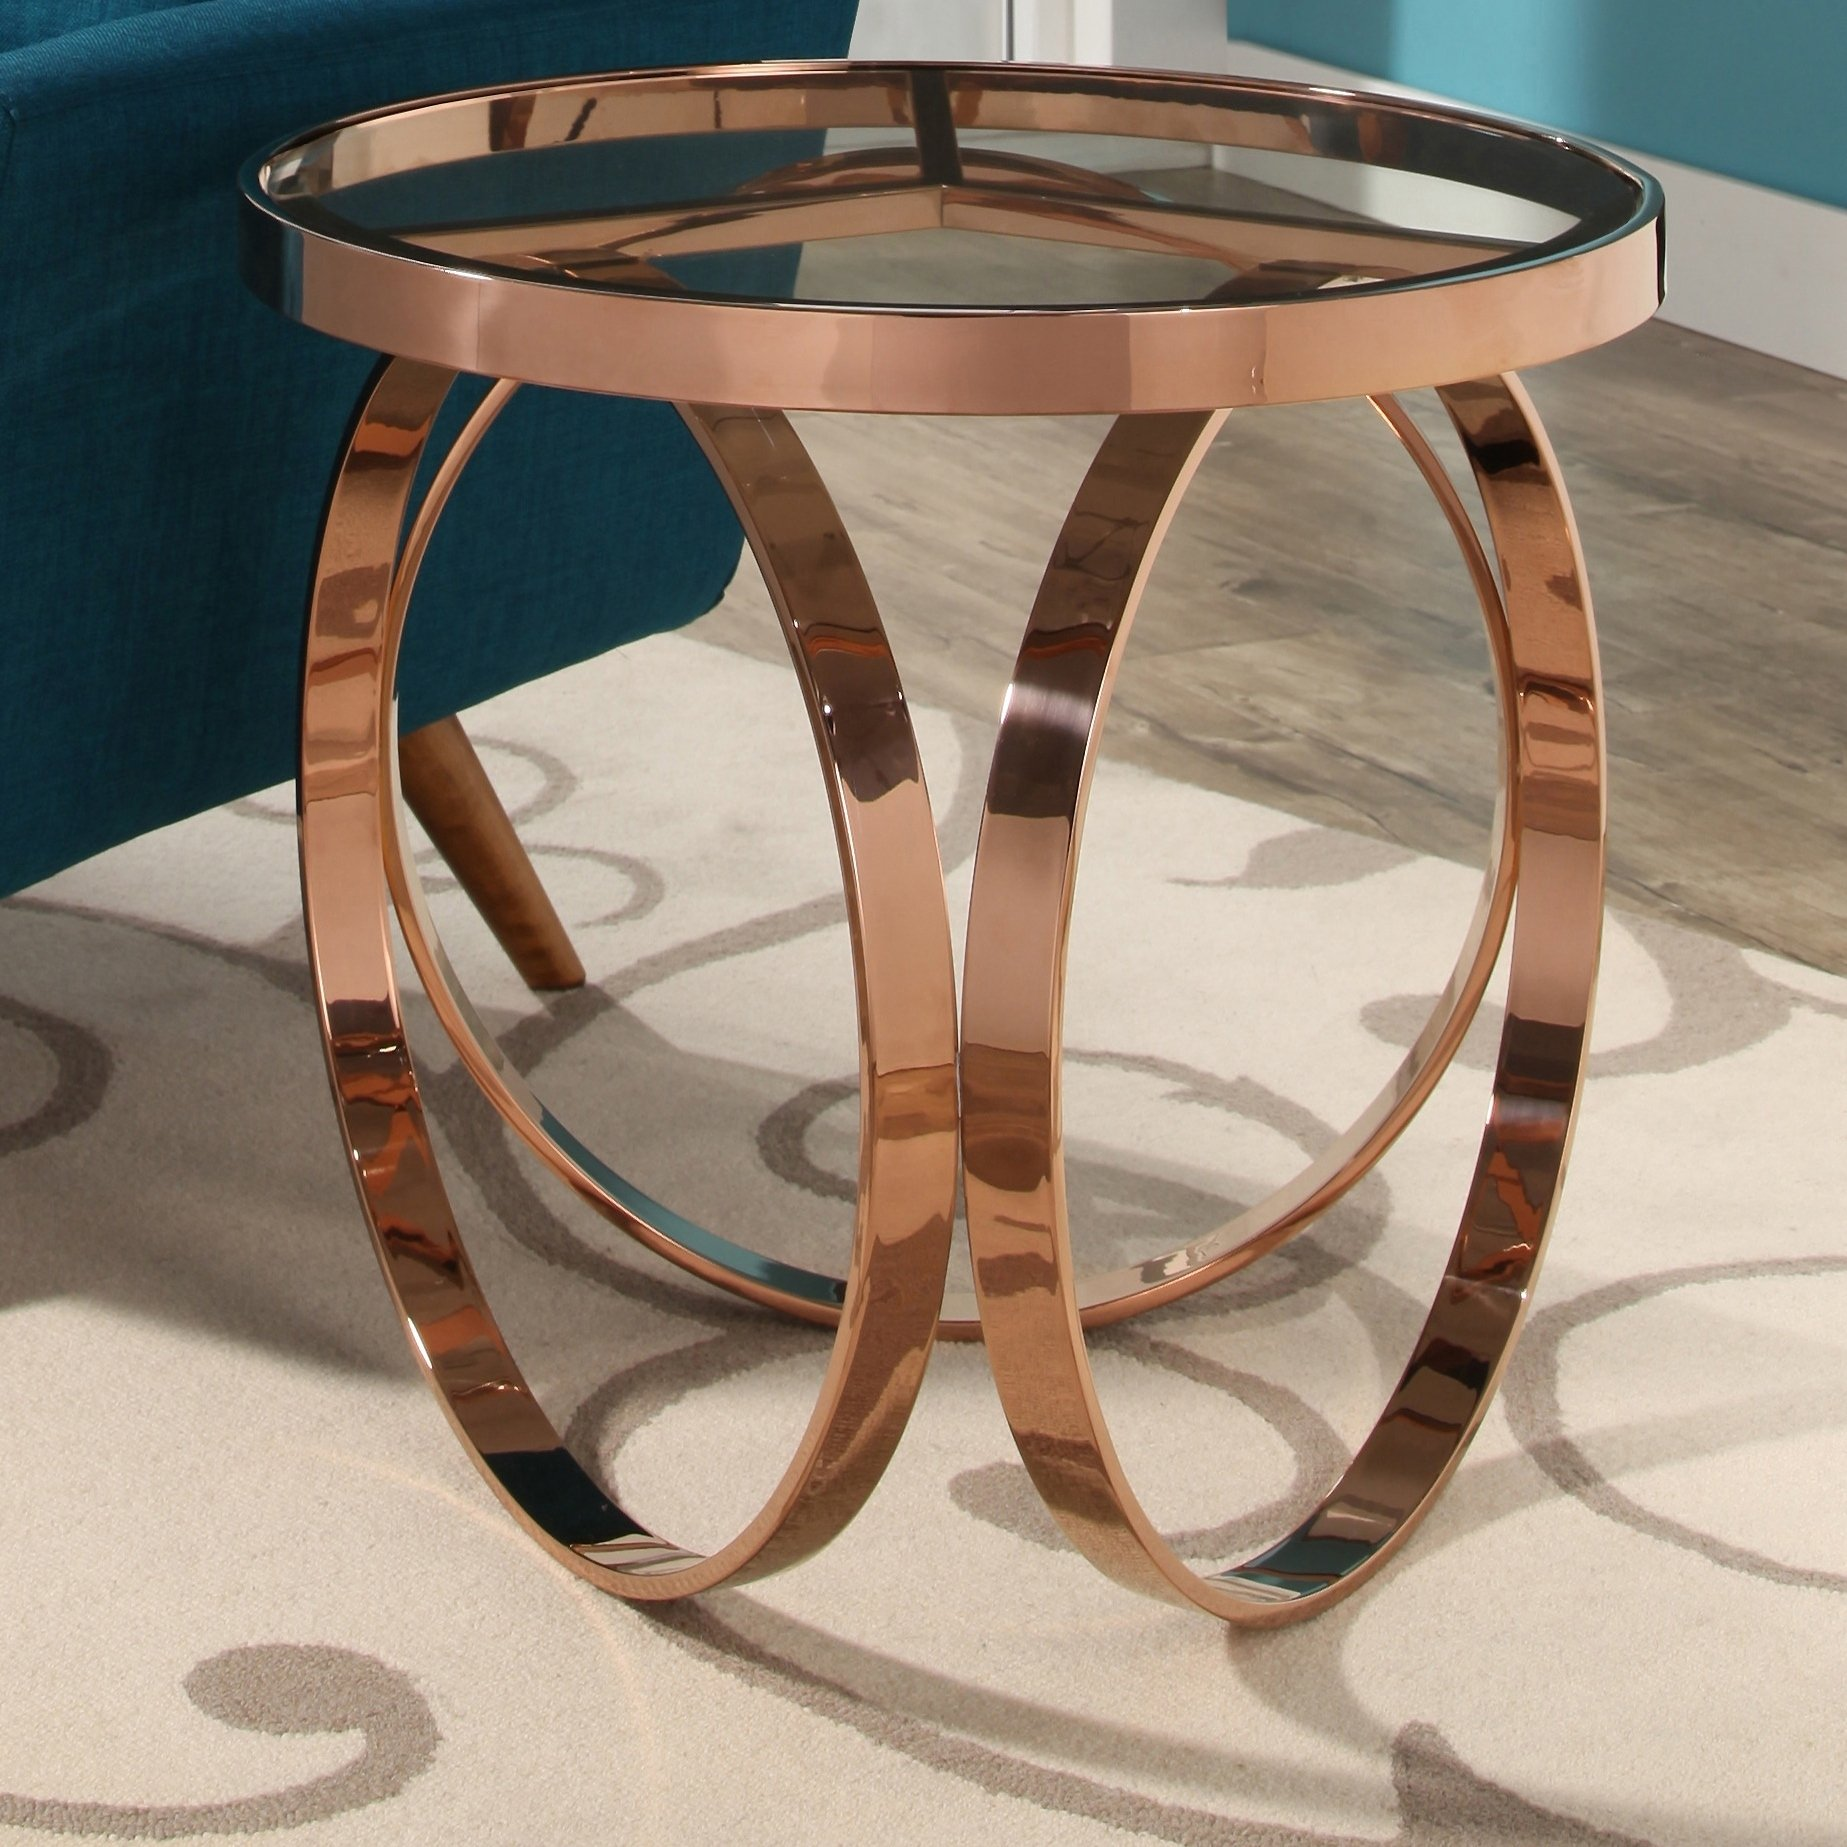 abbyson pearl rose gold metal end table free carmen accent shipping today target nate berkus rug hand painted dress small drop leaf set nesting tables basket coffee mirrored side